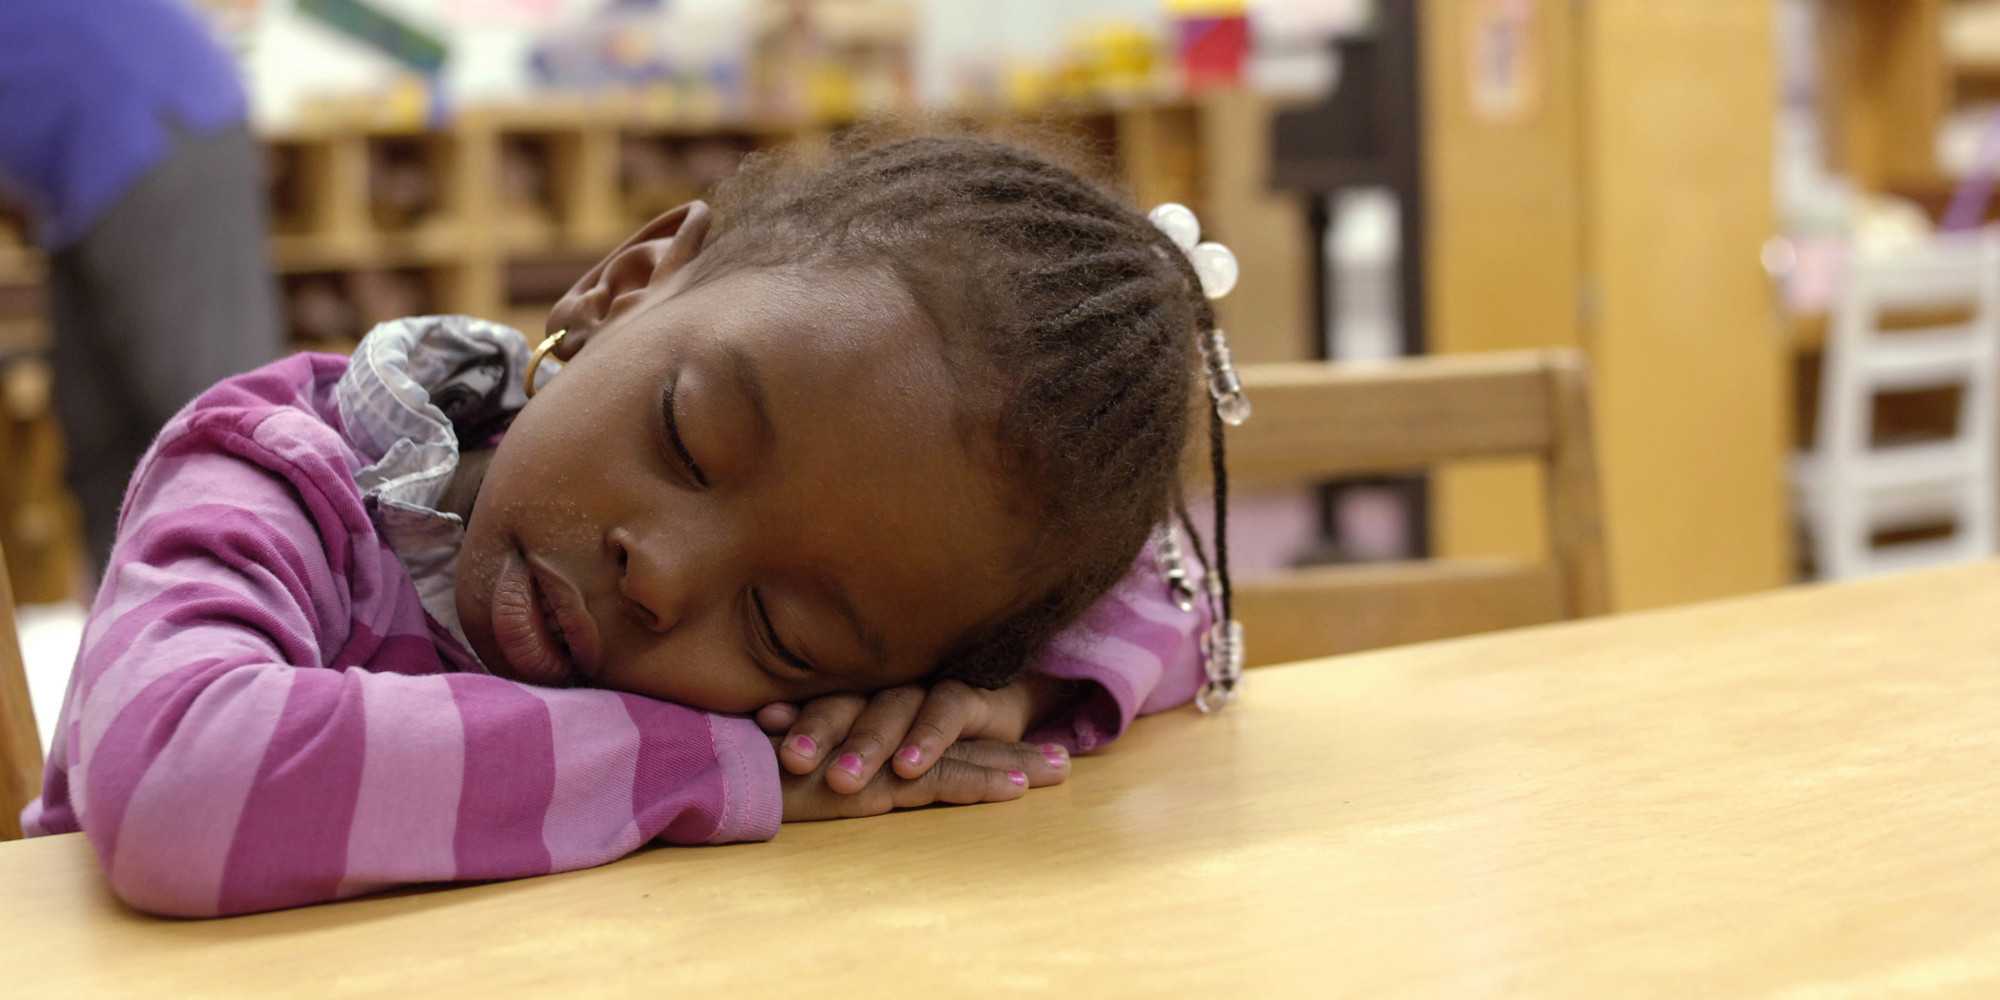 Naps During School? For Preschoolers, Yes | Dr. Michael J ...